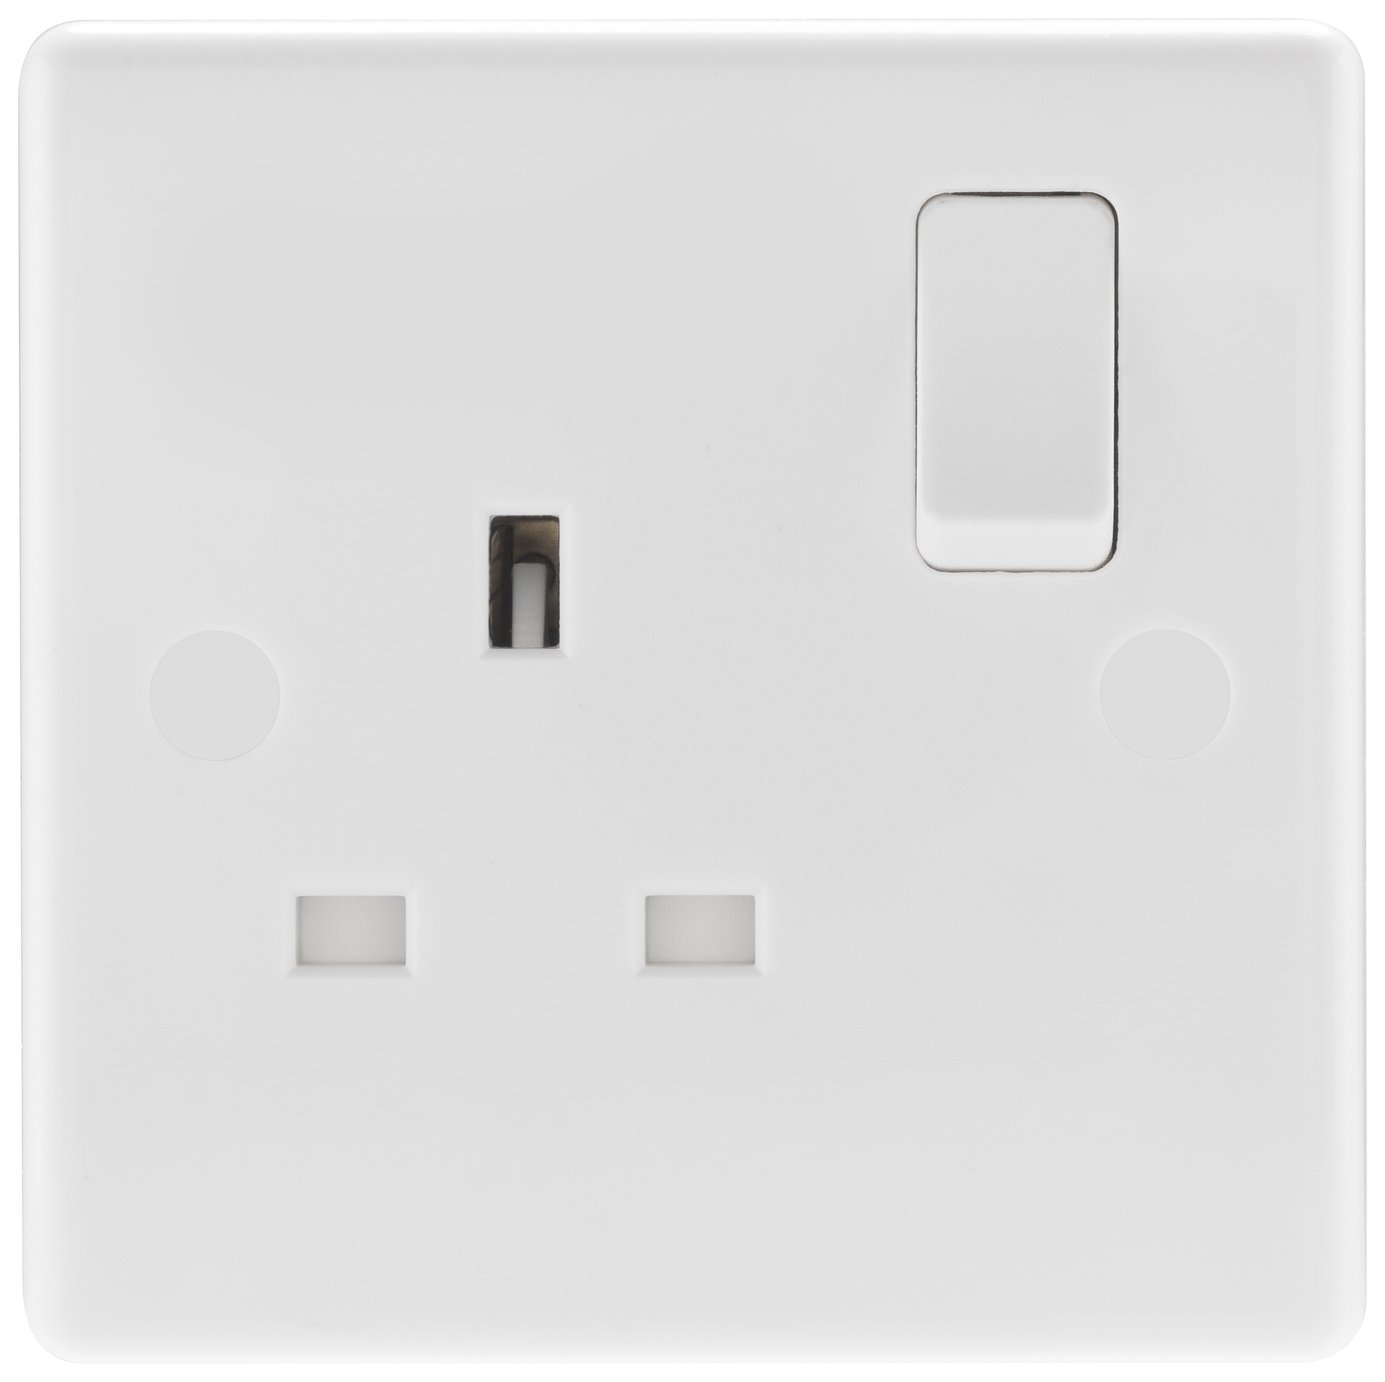 BG Single Switched Power Socket - White